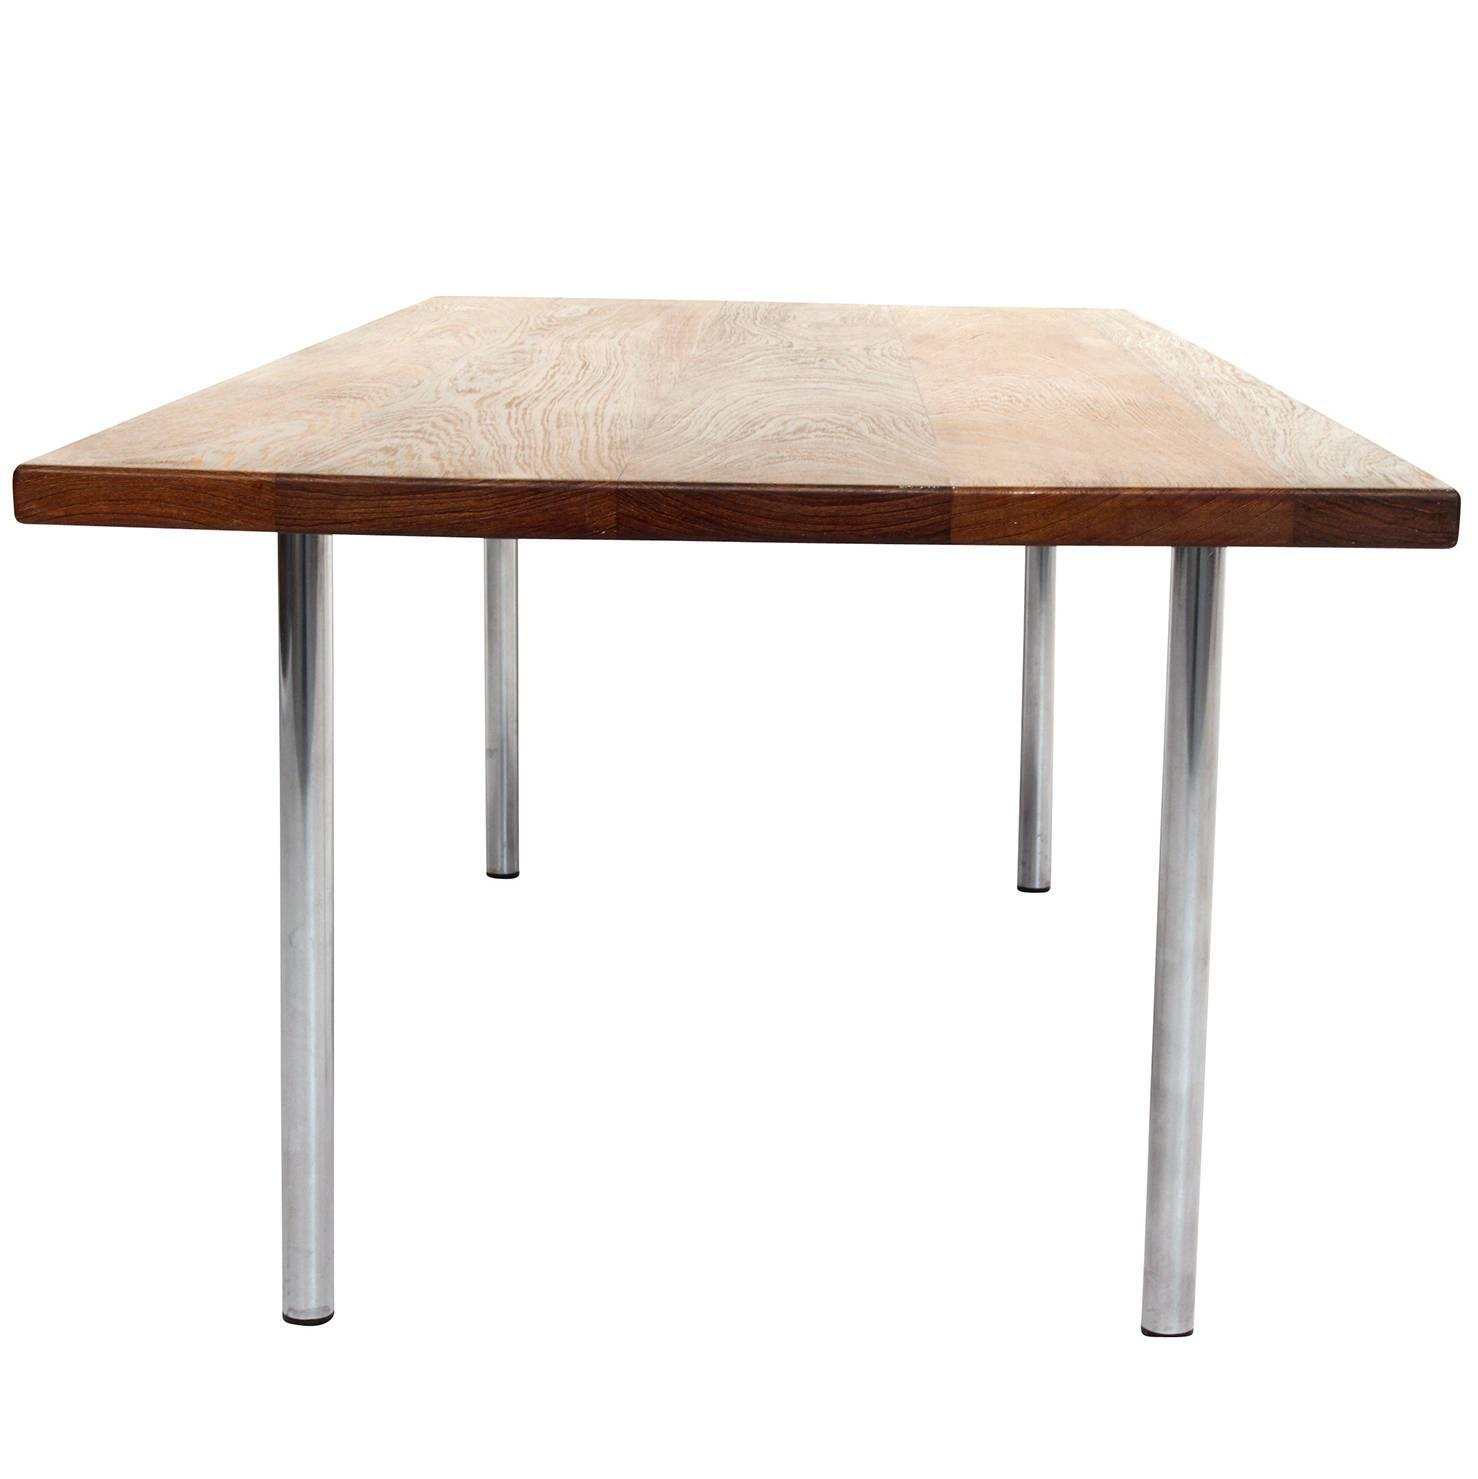 Hans Wegner Coffee Table Model AT 12 in Solid Wengé Wood For Sale